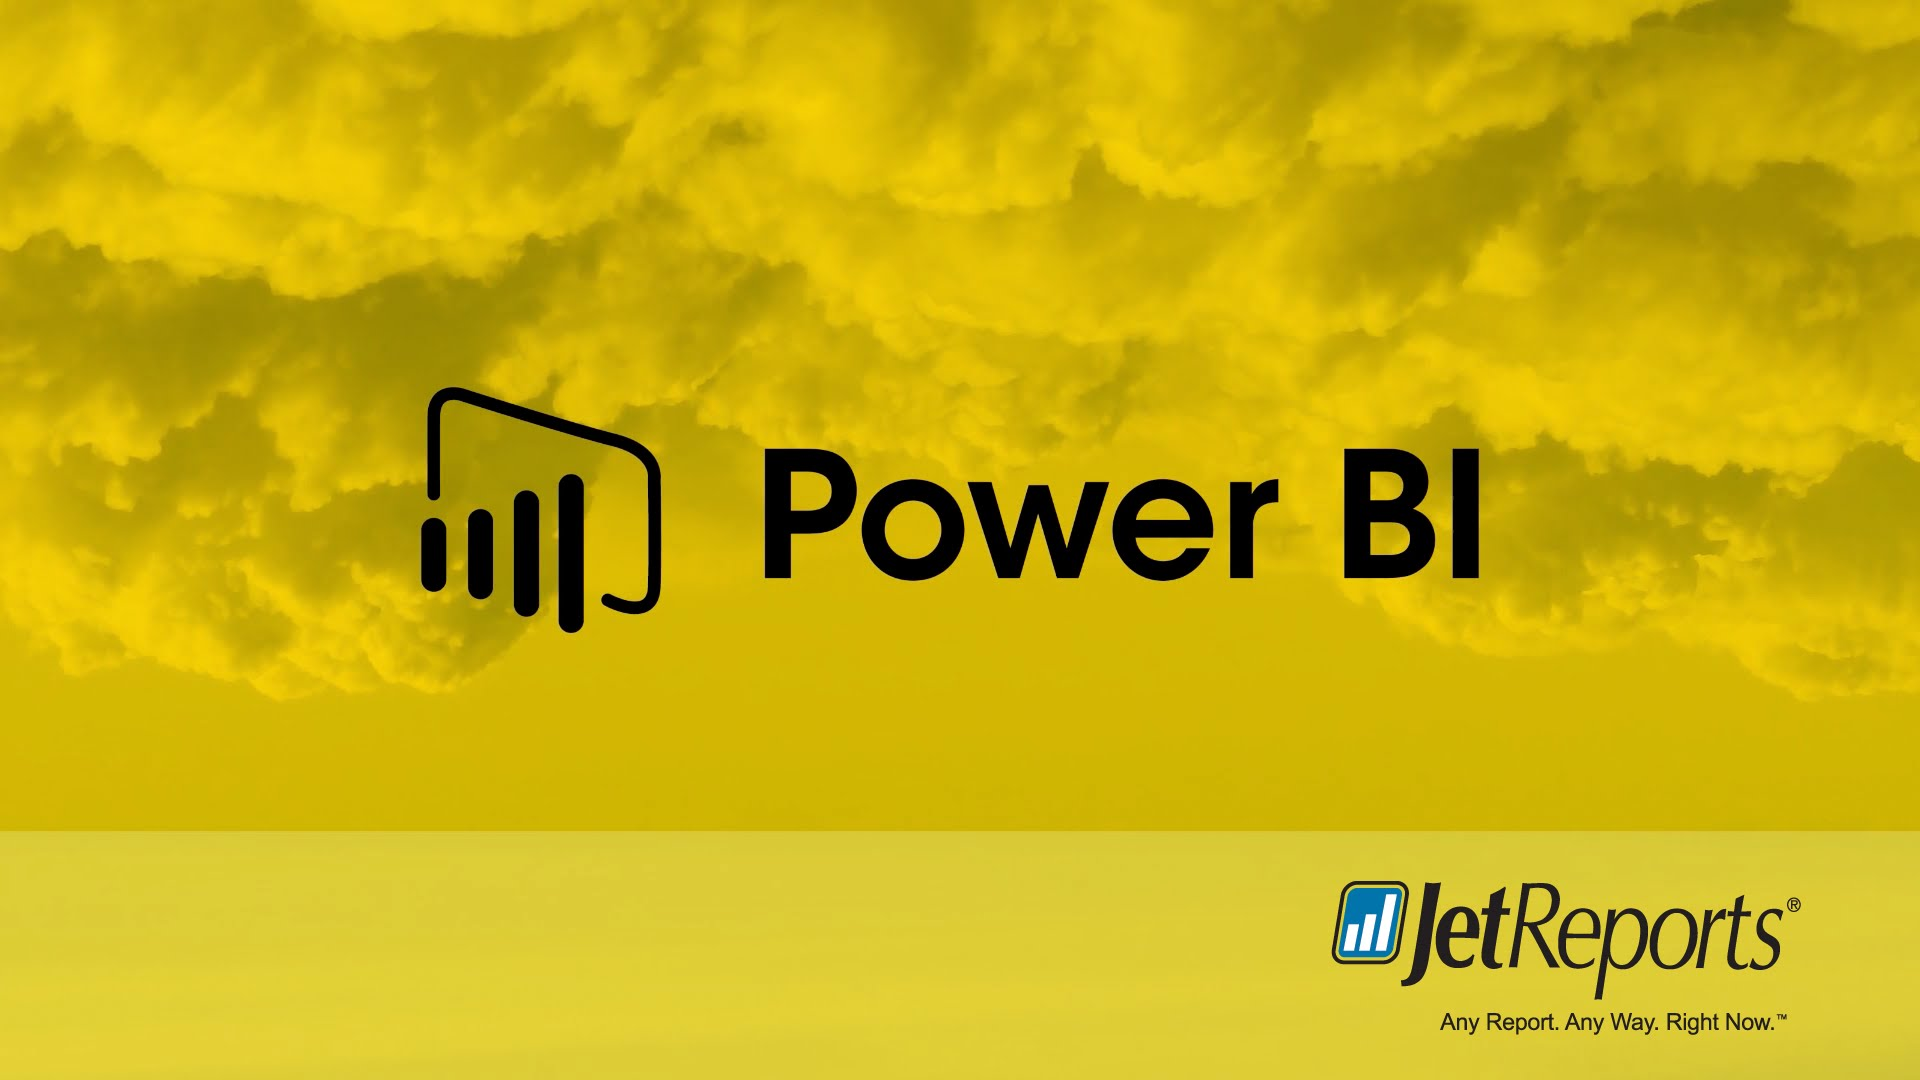 Power BI ve JetReports